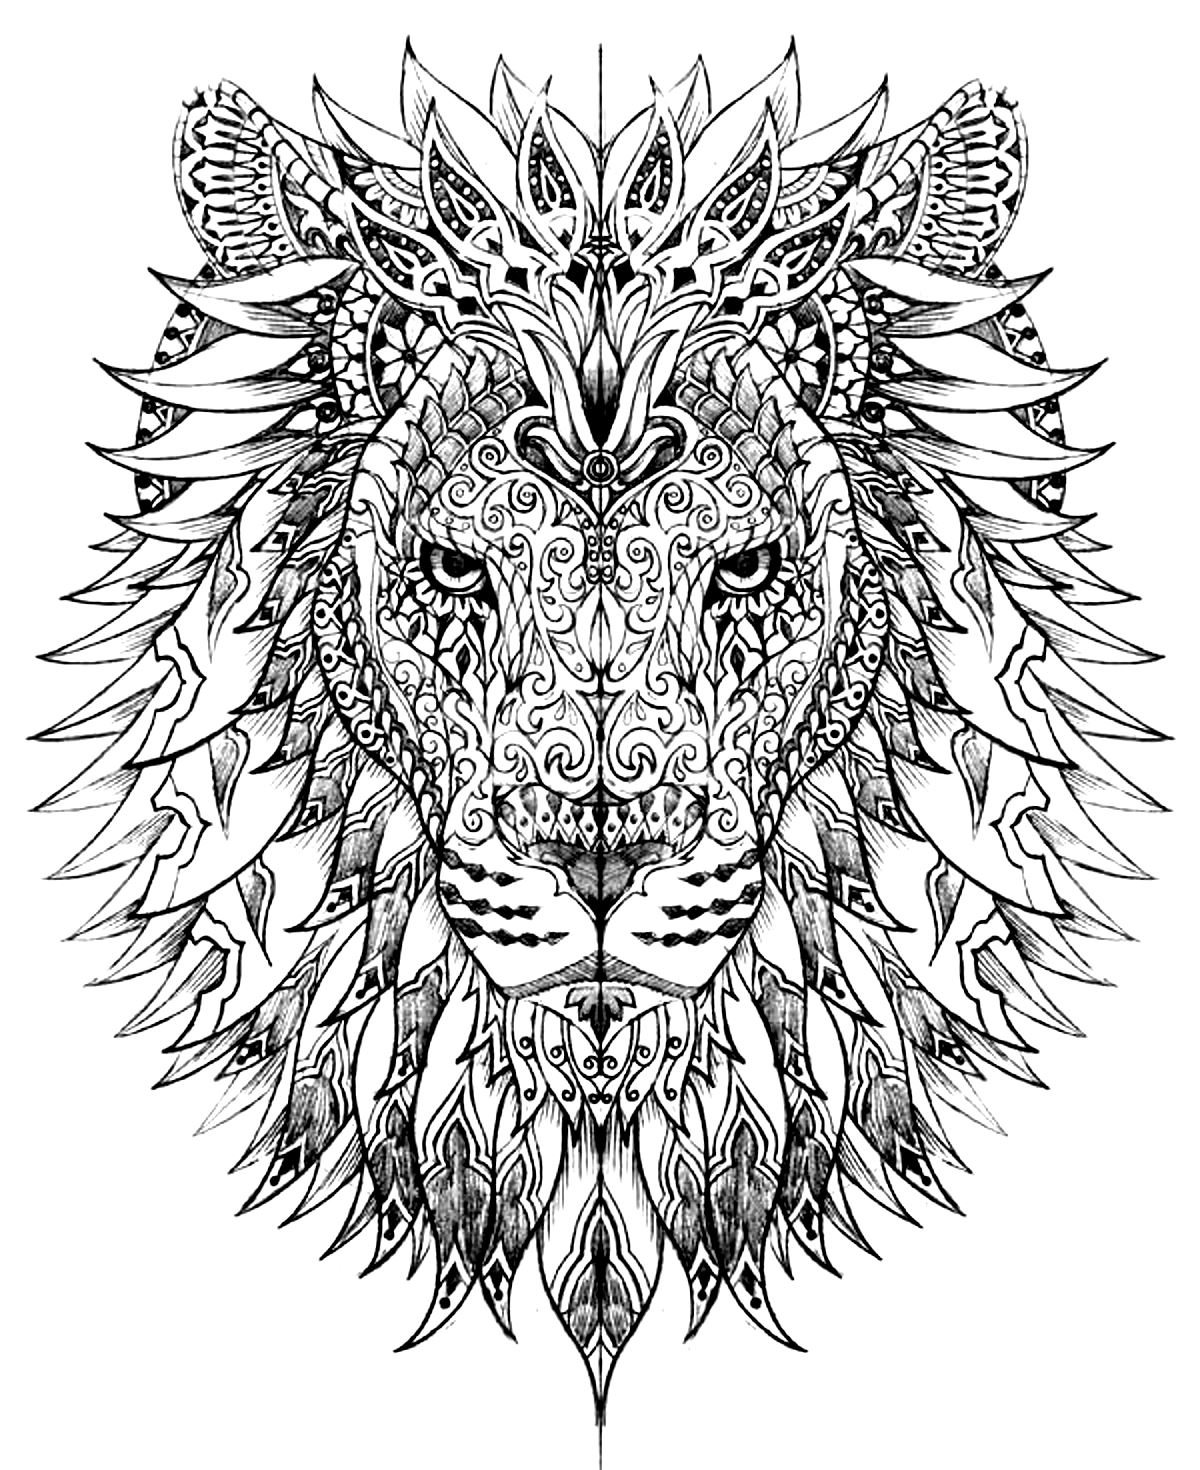 coloring pages for kids hard coloring pages for adults difficult animals 44 coloring for hard kids pages coloring